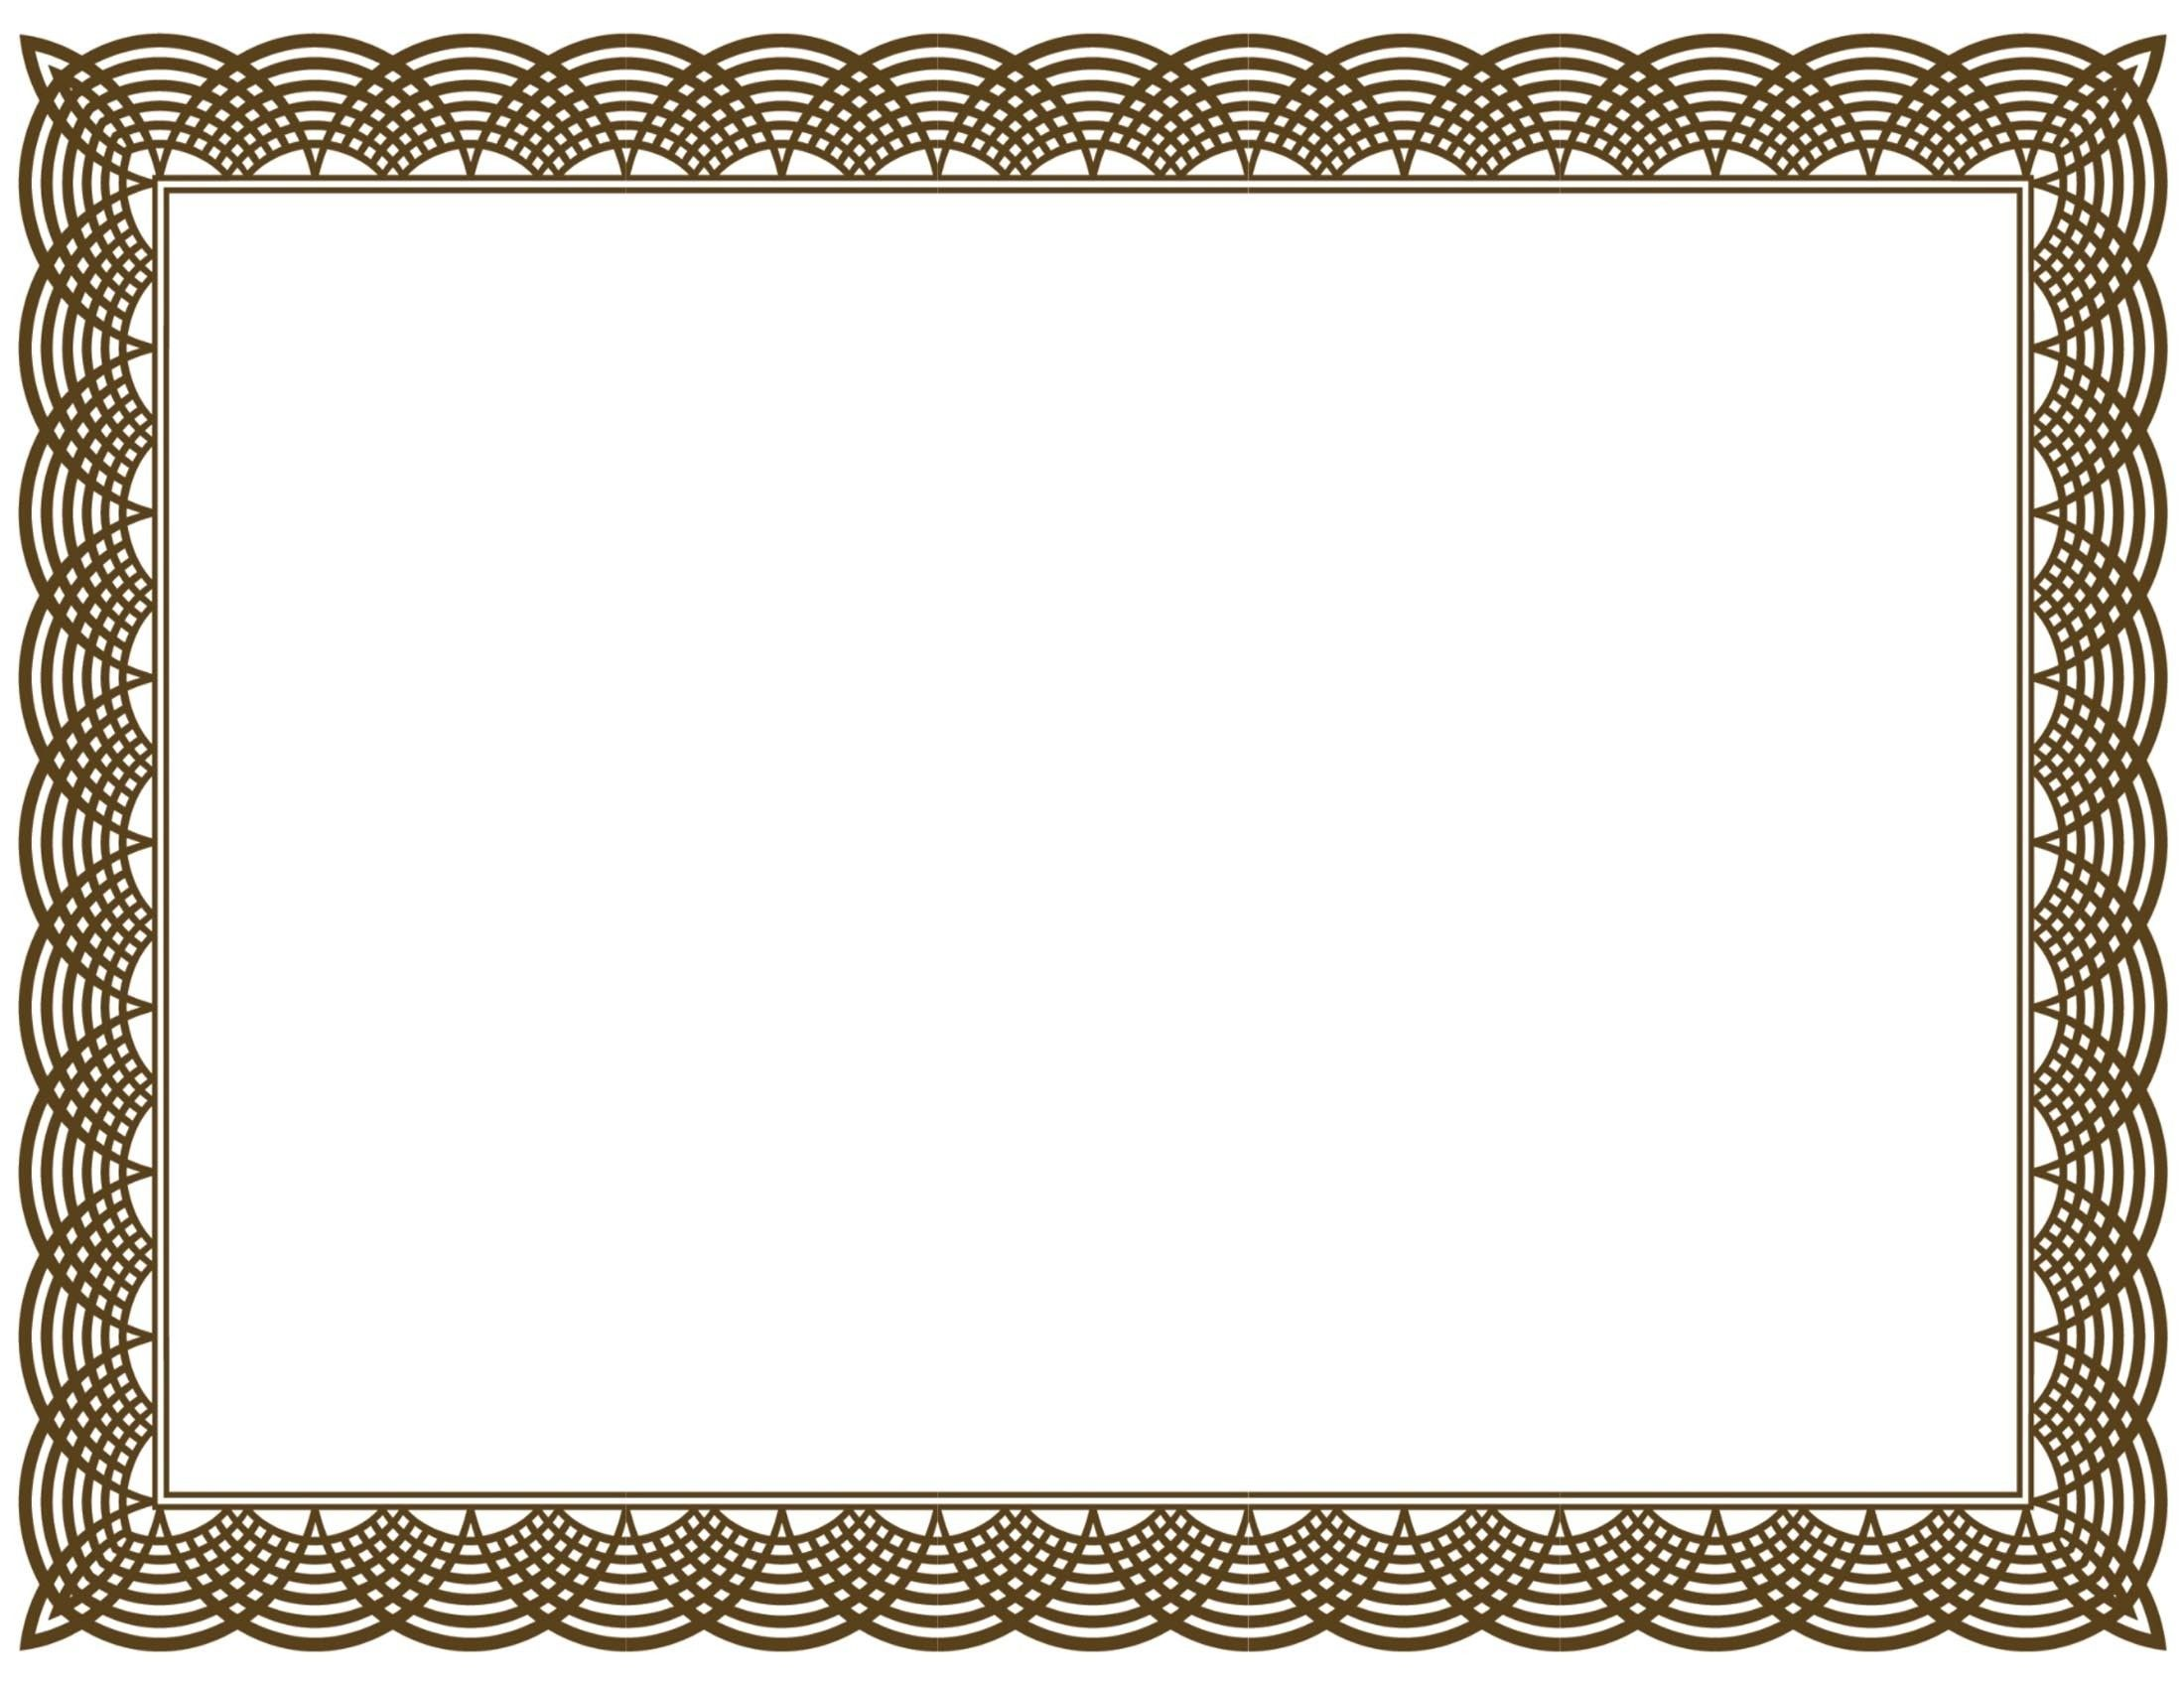 Award Certificate Border Pdf Template In Certificate Border.